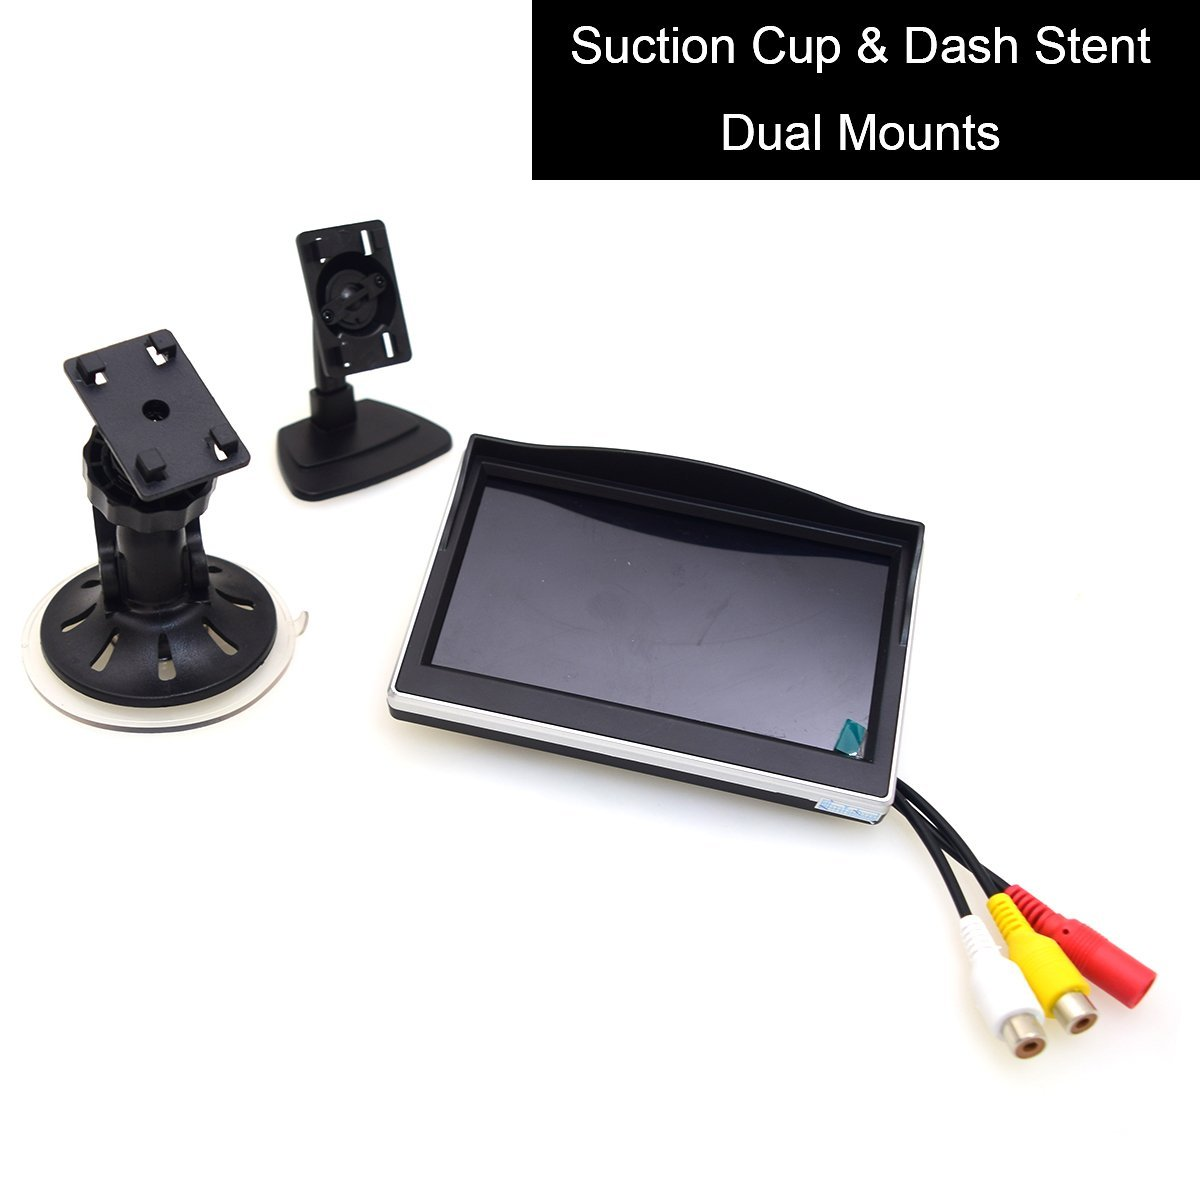 5'' Car Monitor, EKYLIN 12-24V Wide Input Truck/In-Car TFT LCD Screen Suction Cup & Dash Stand Dual Mounting Bracket 2 RCA Channel for Backup Camera/Rear view/DVD/Media Player